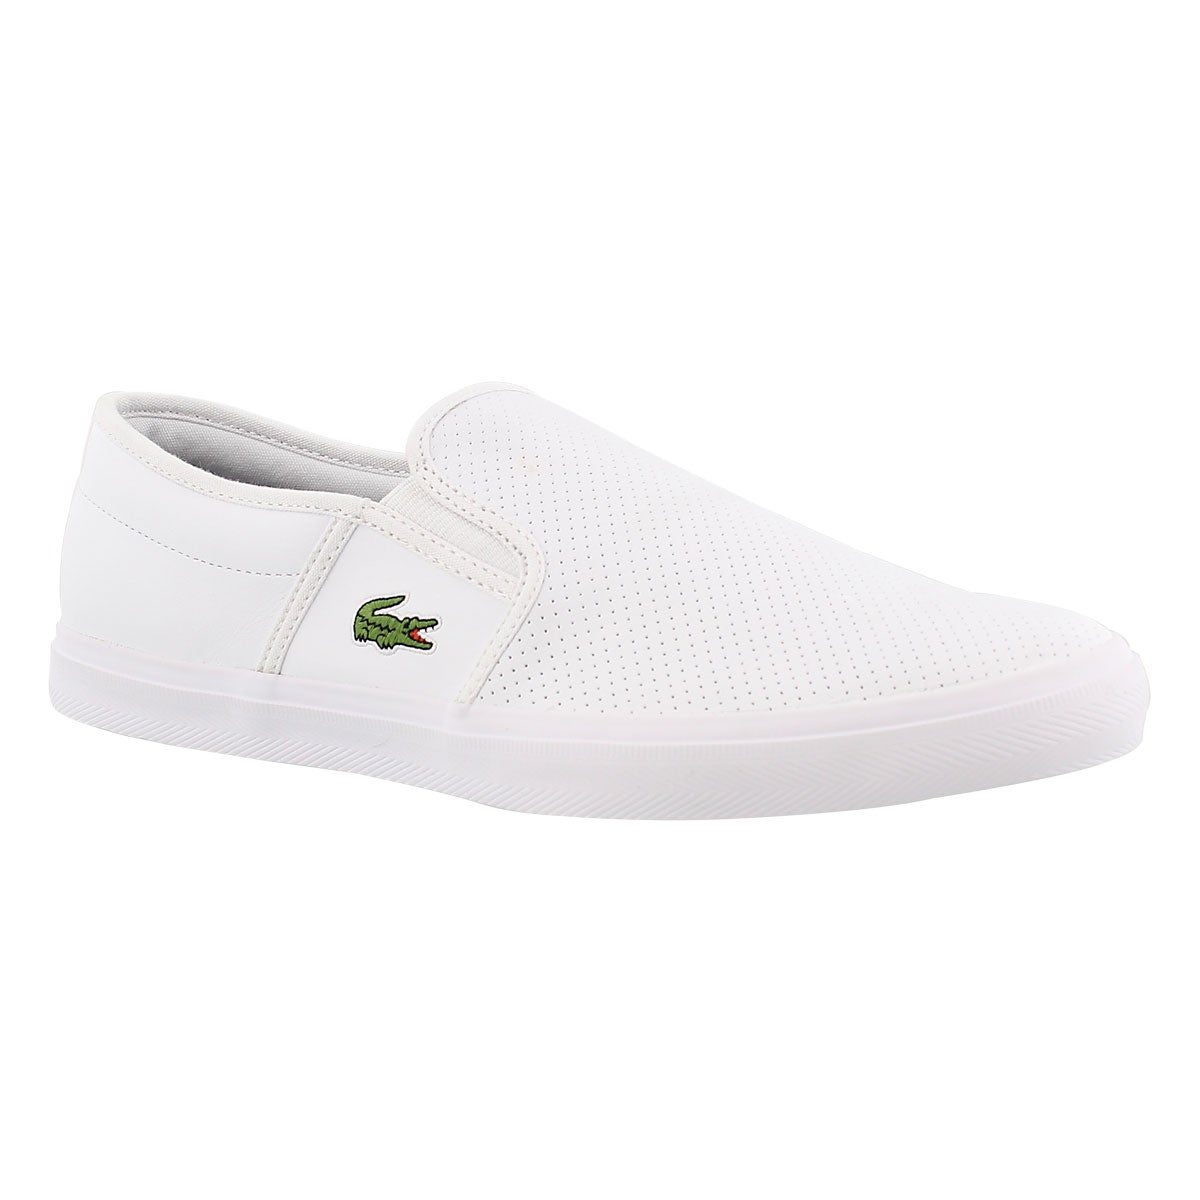 Men's GAZON SPORT white casual sneakers